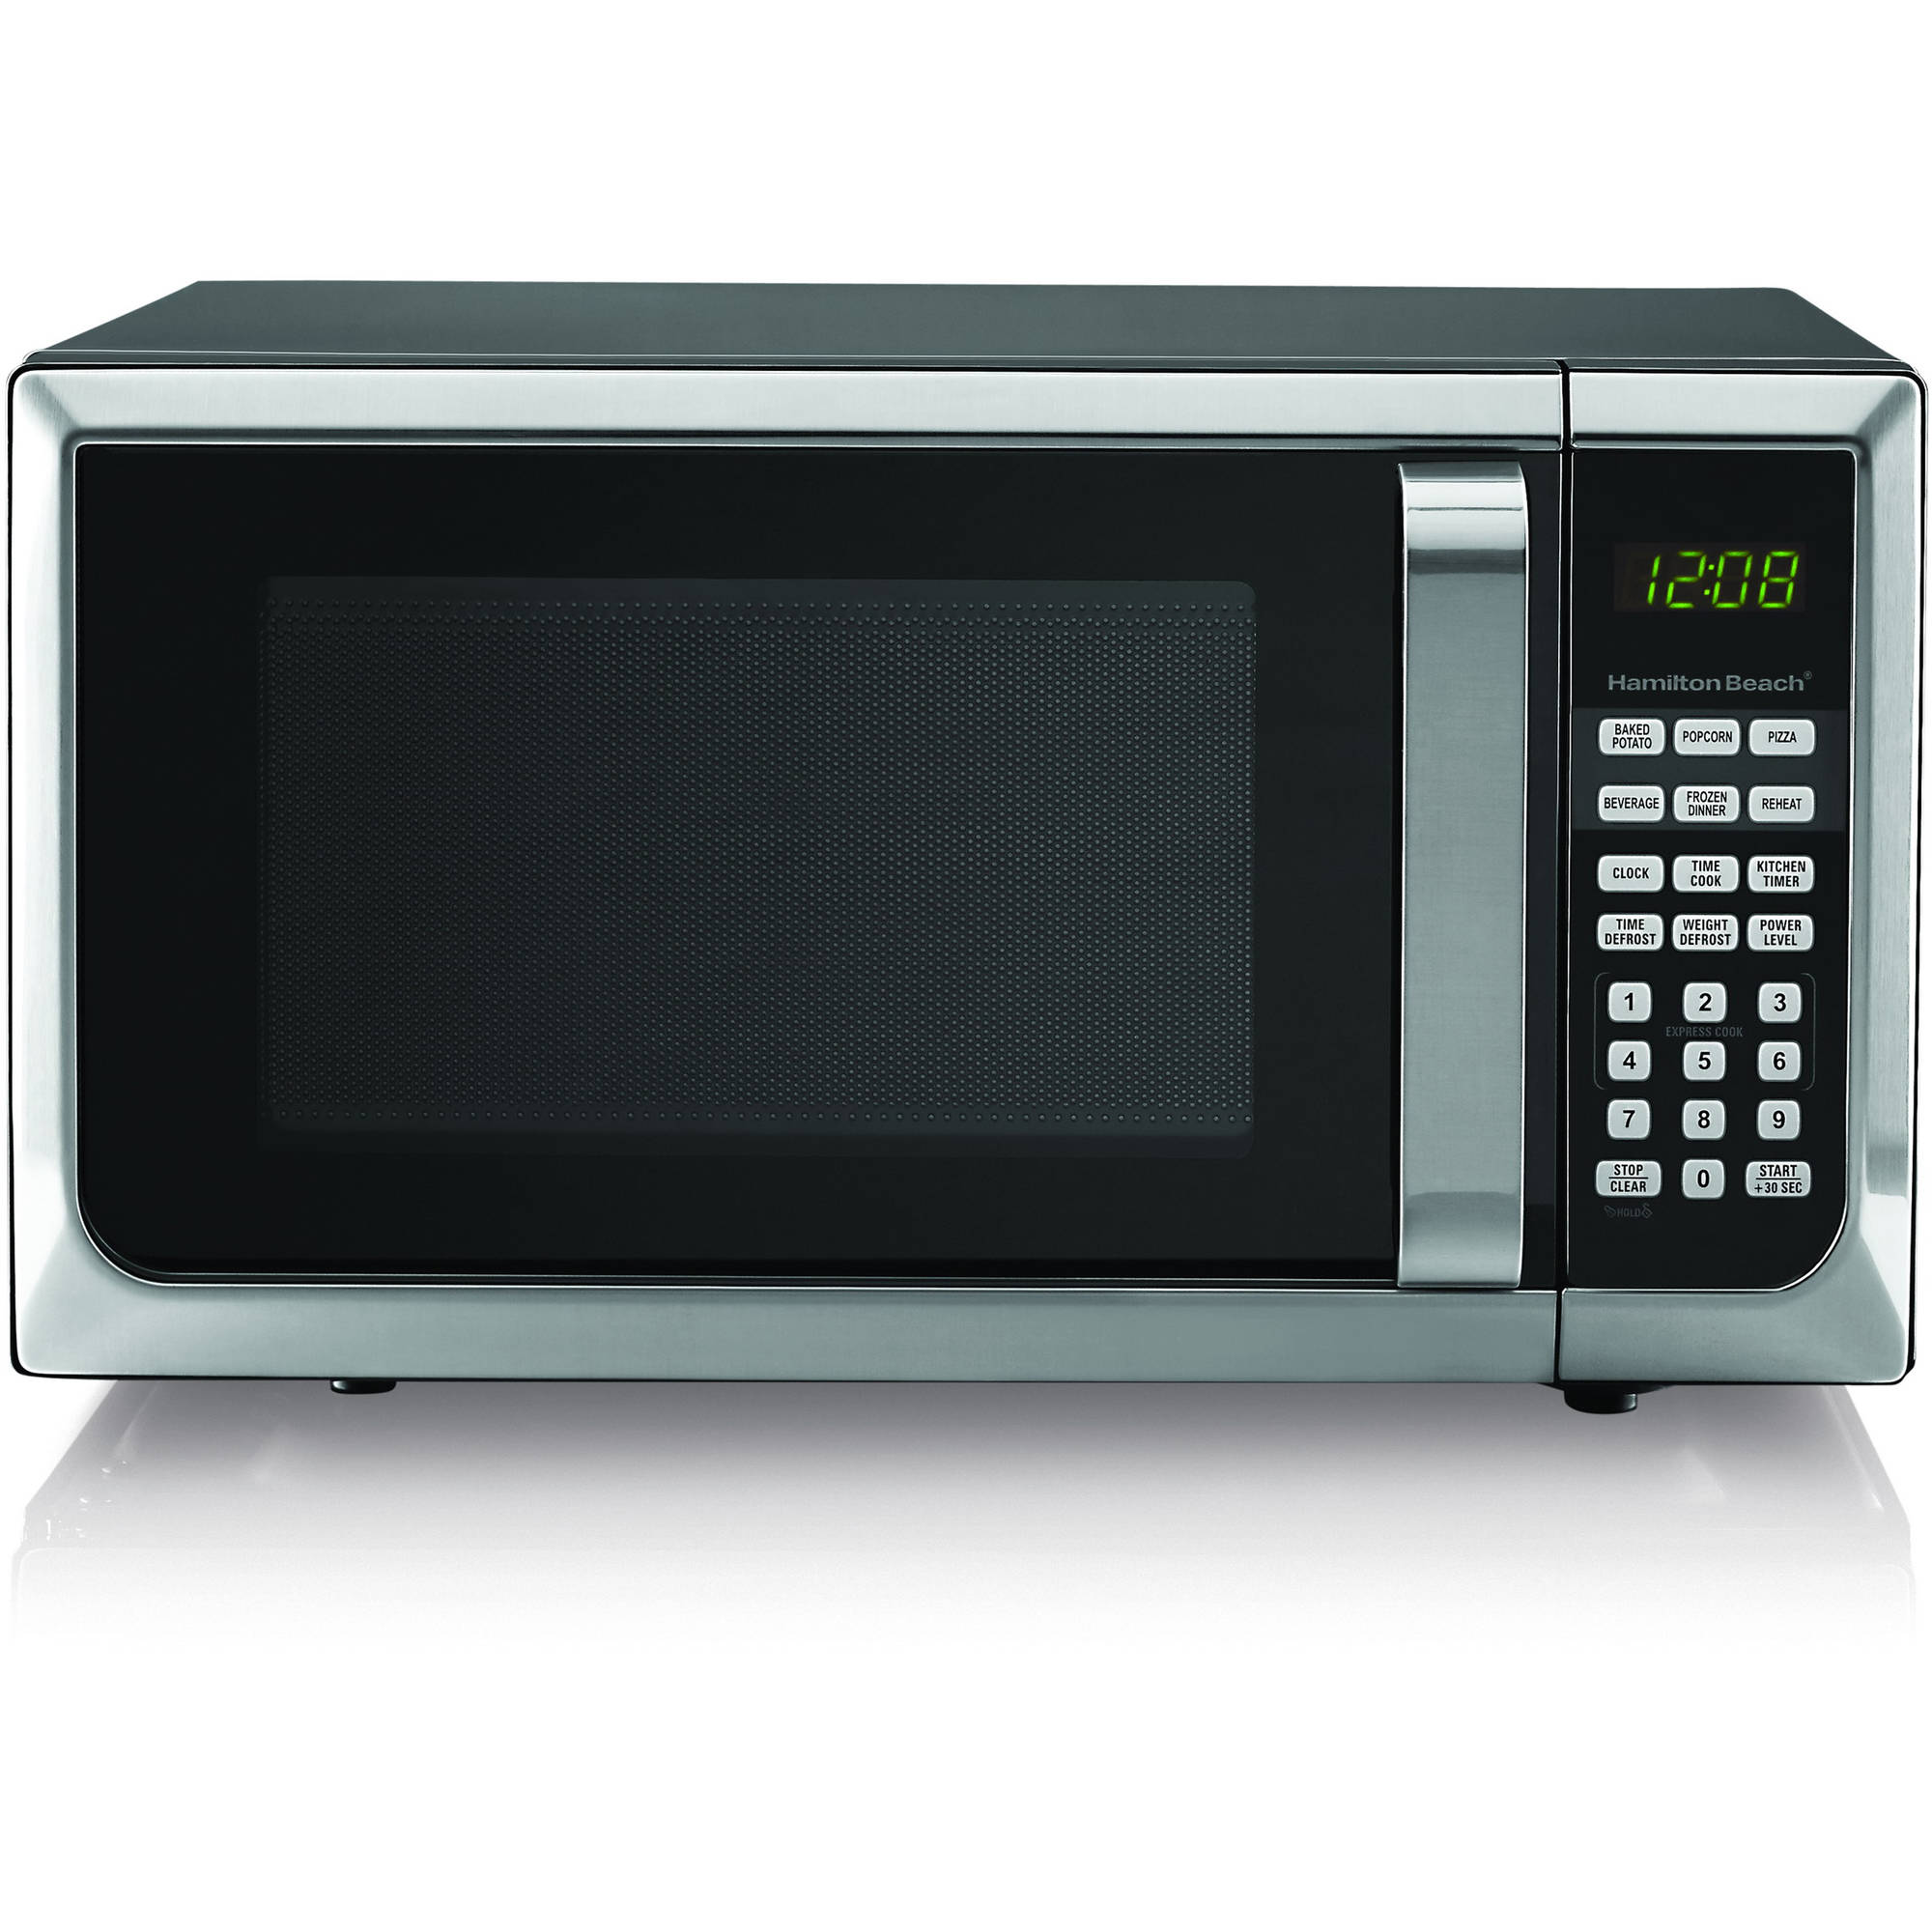 Microwave Oven Stainless Steel New